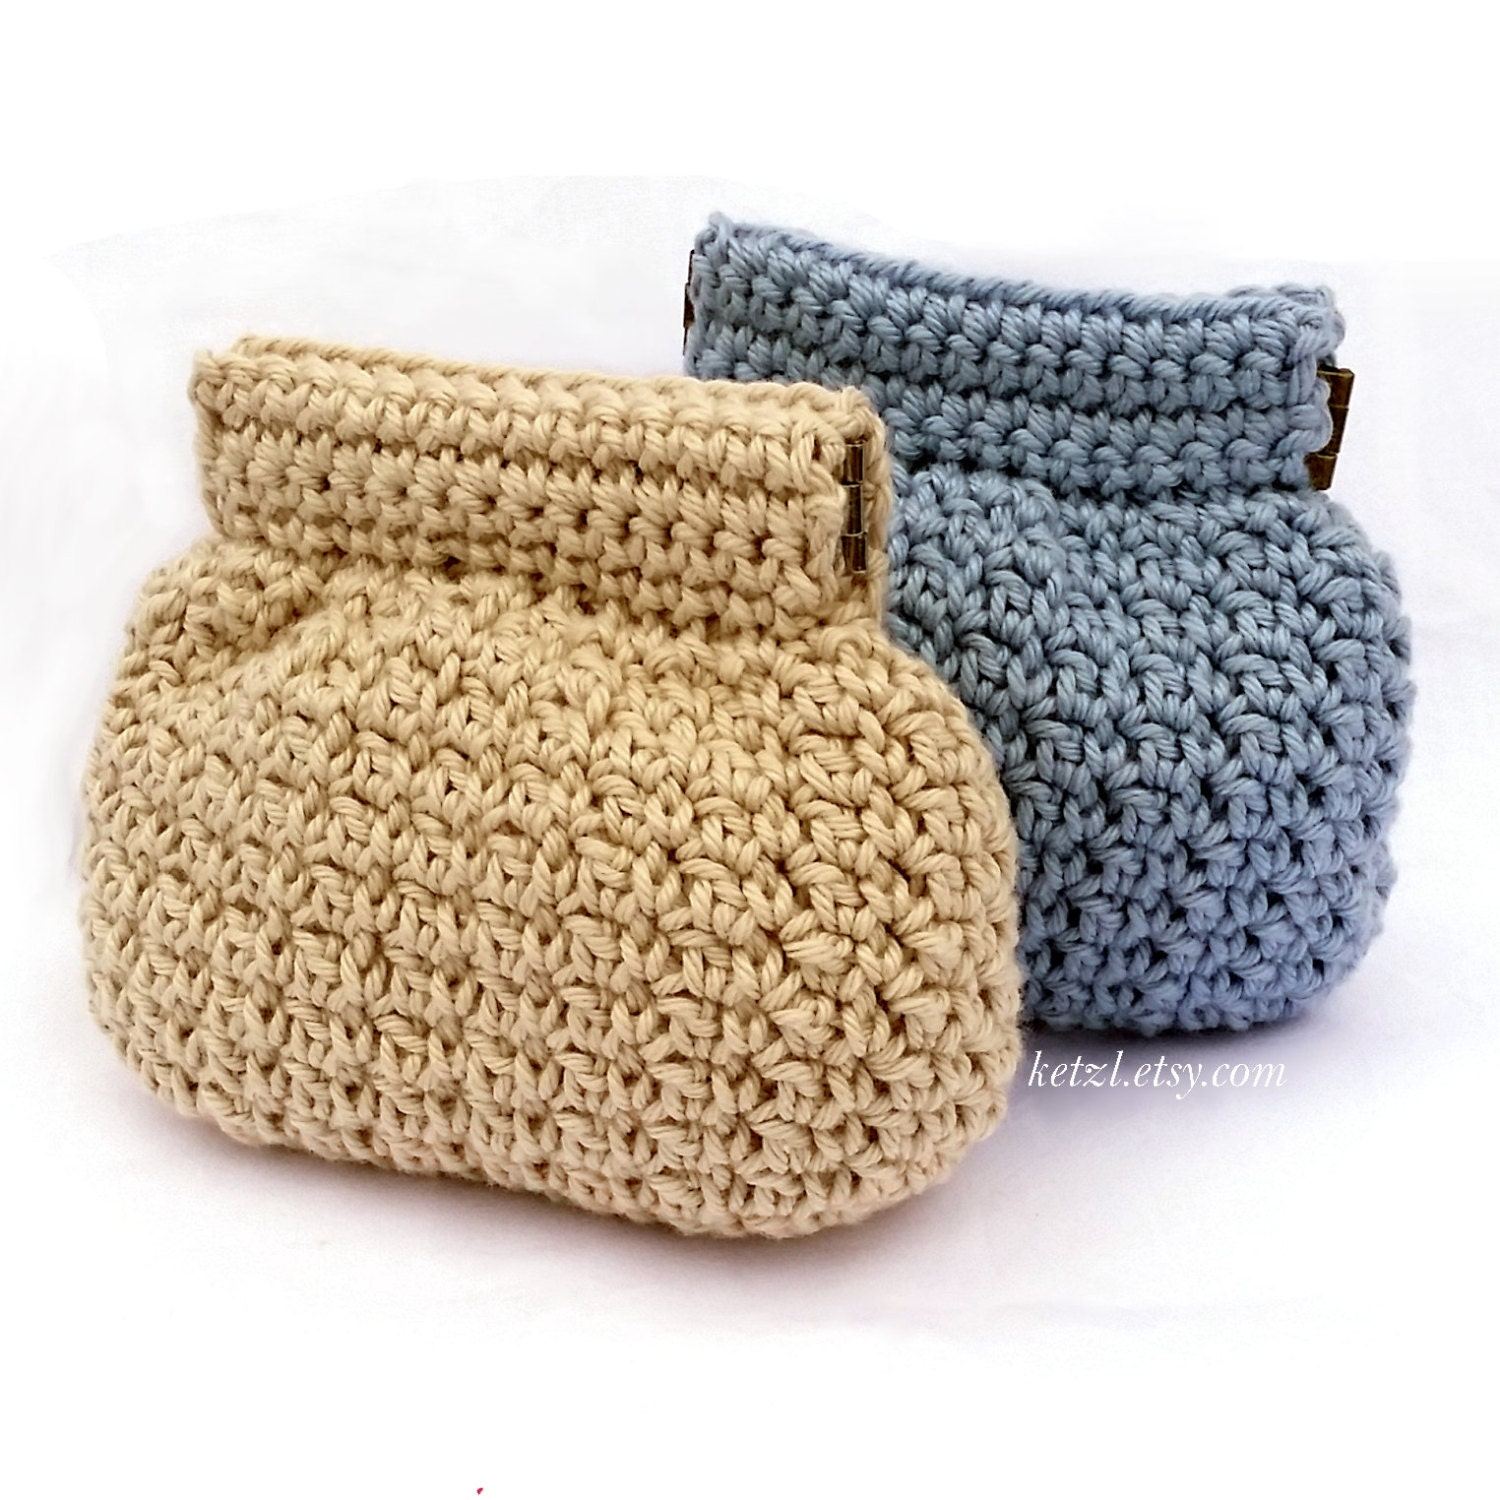 Small Crochet Pouch Pattern : Purse crochet pattern coin purse pouch small squeeze frame by ketzl ...